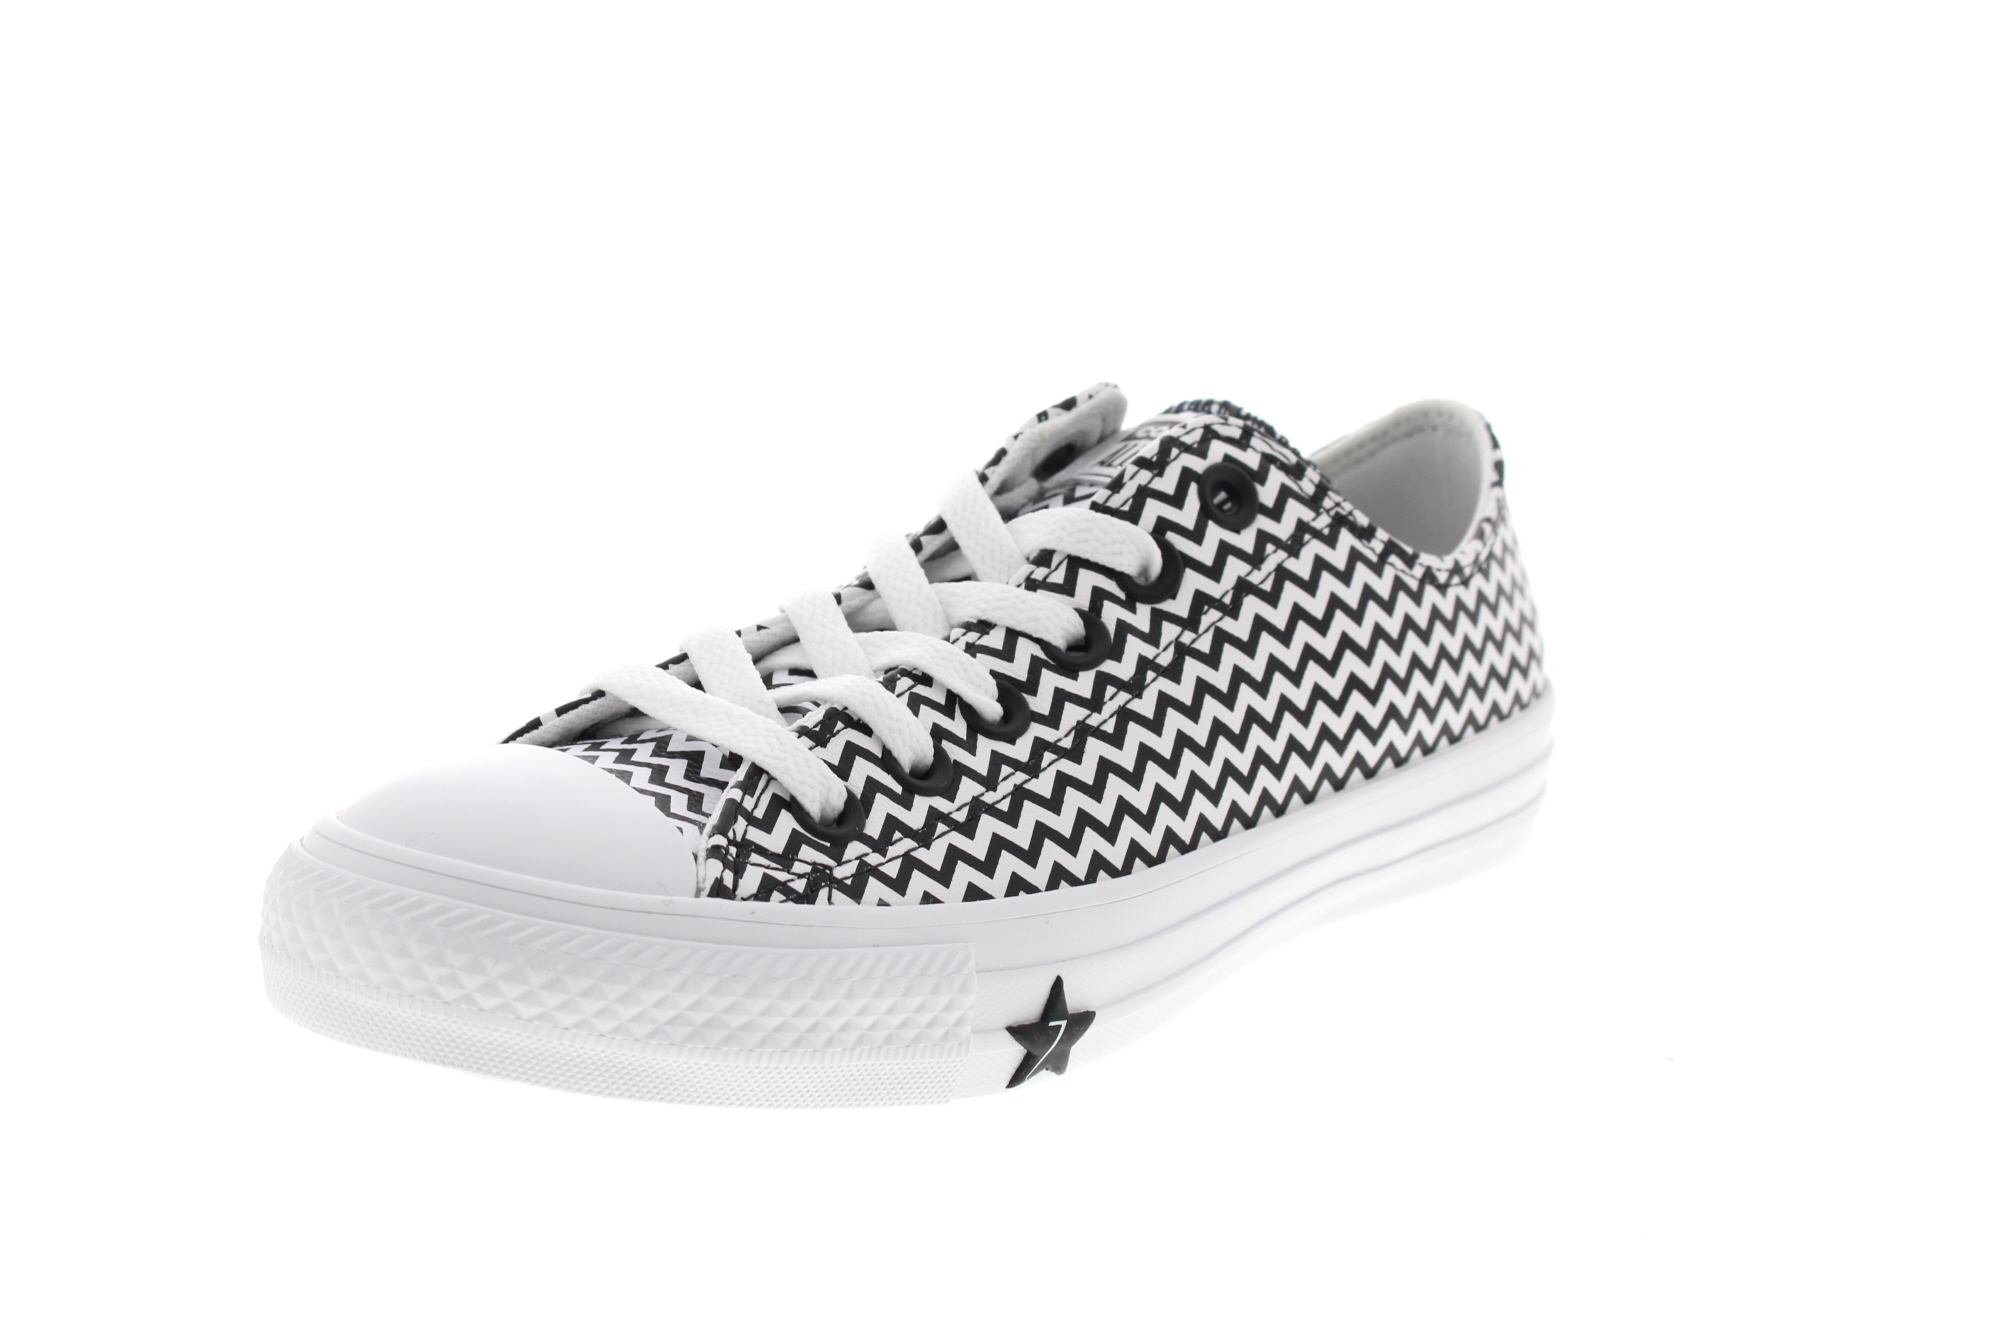 CONVERSE Damen Sneakers - CTAS OX 565367C - white black_1